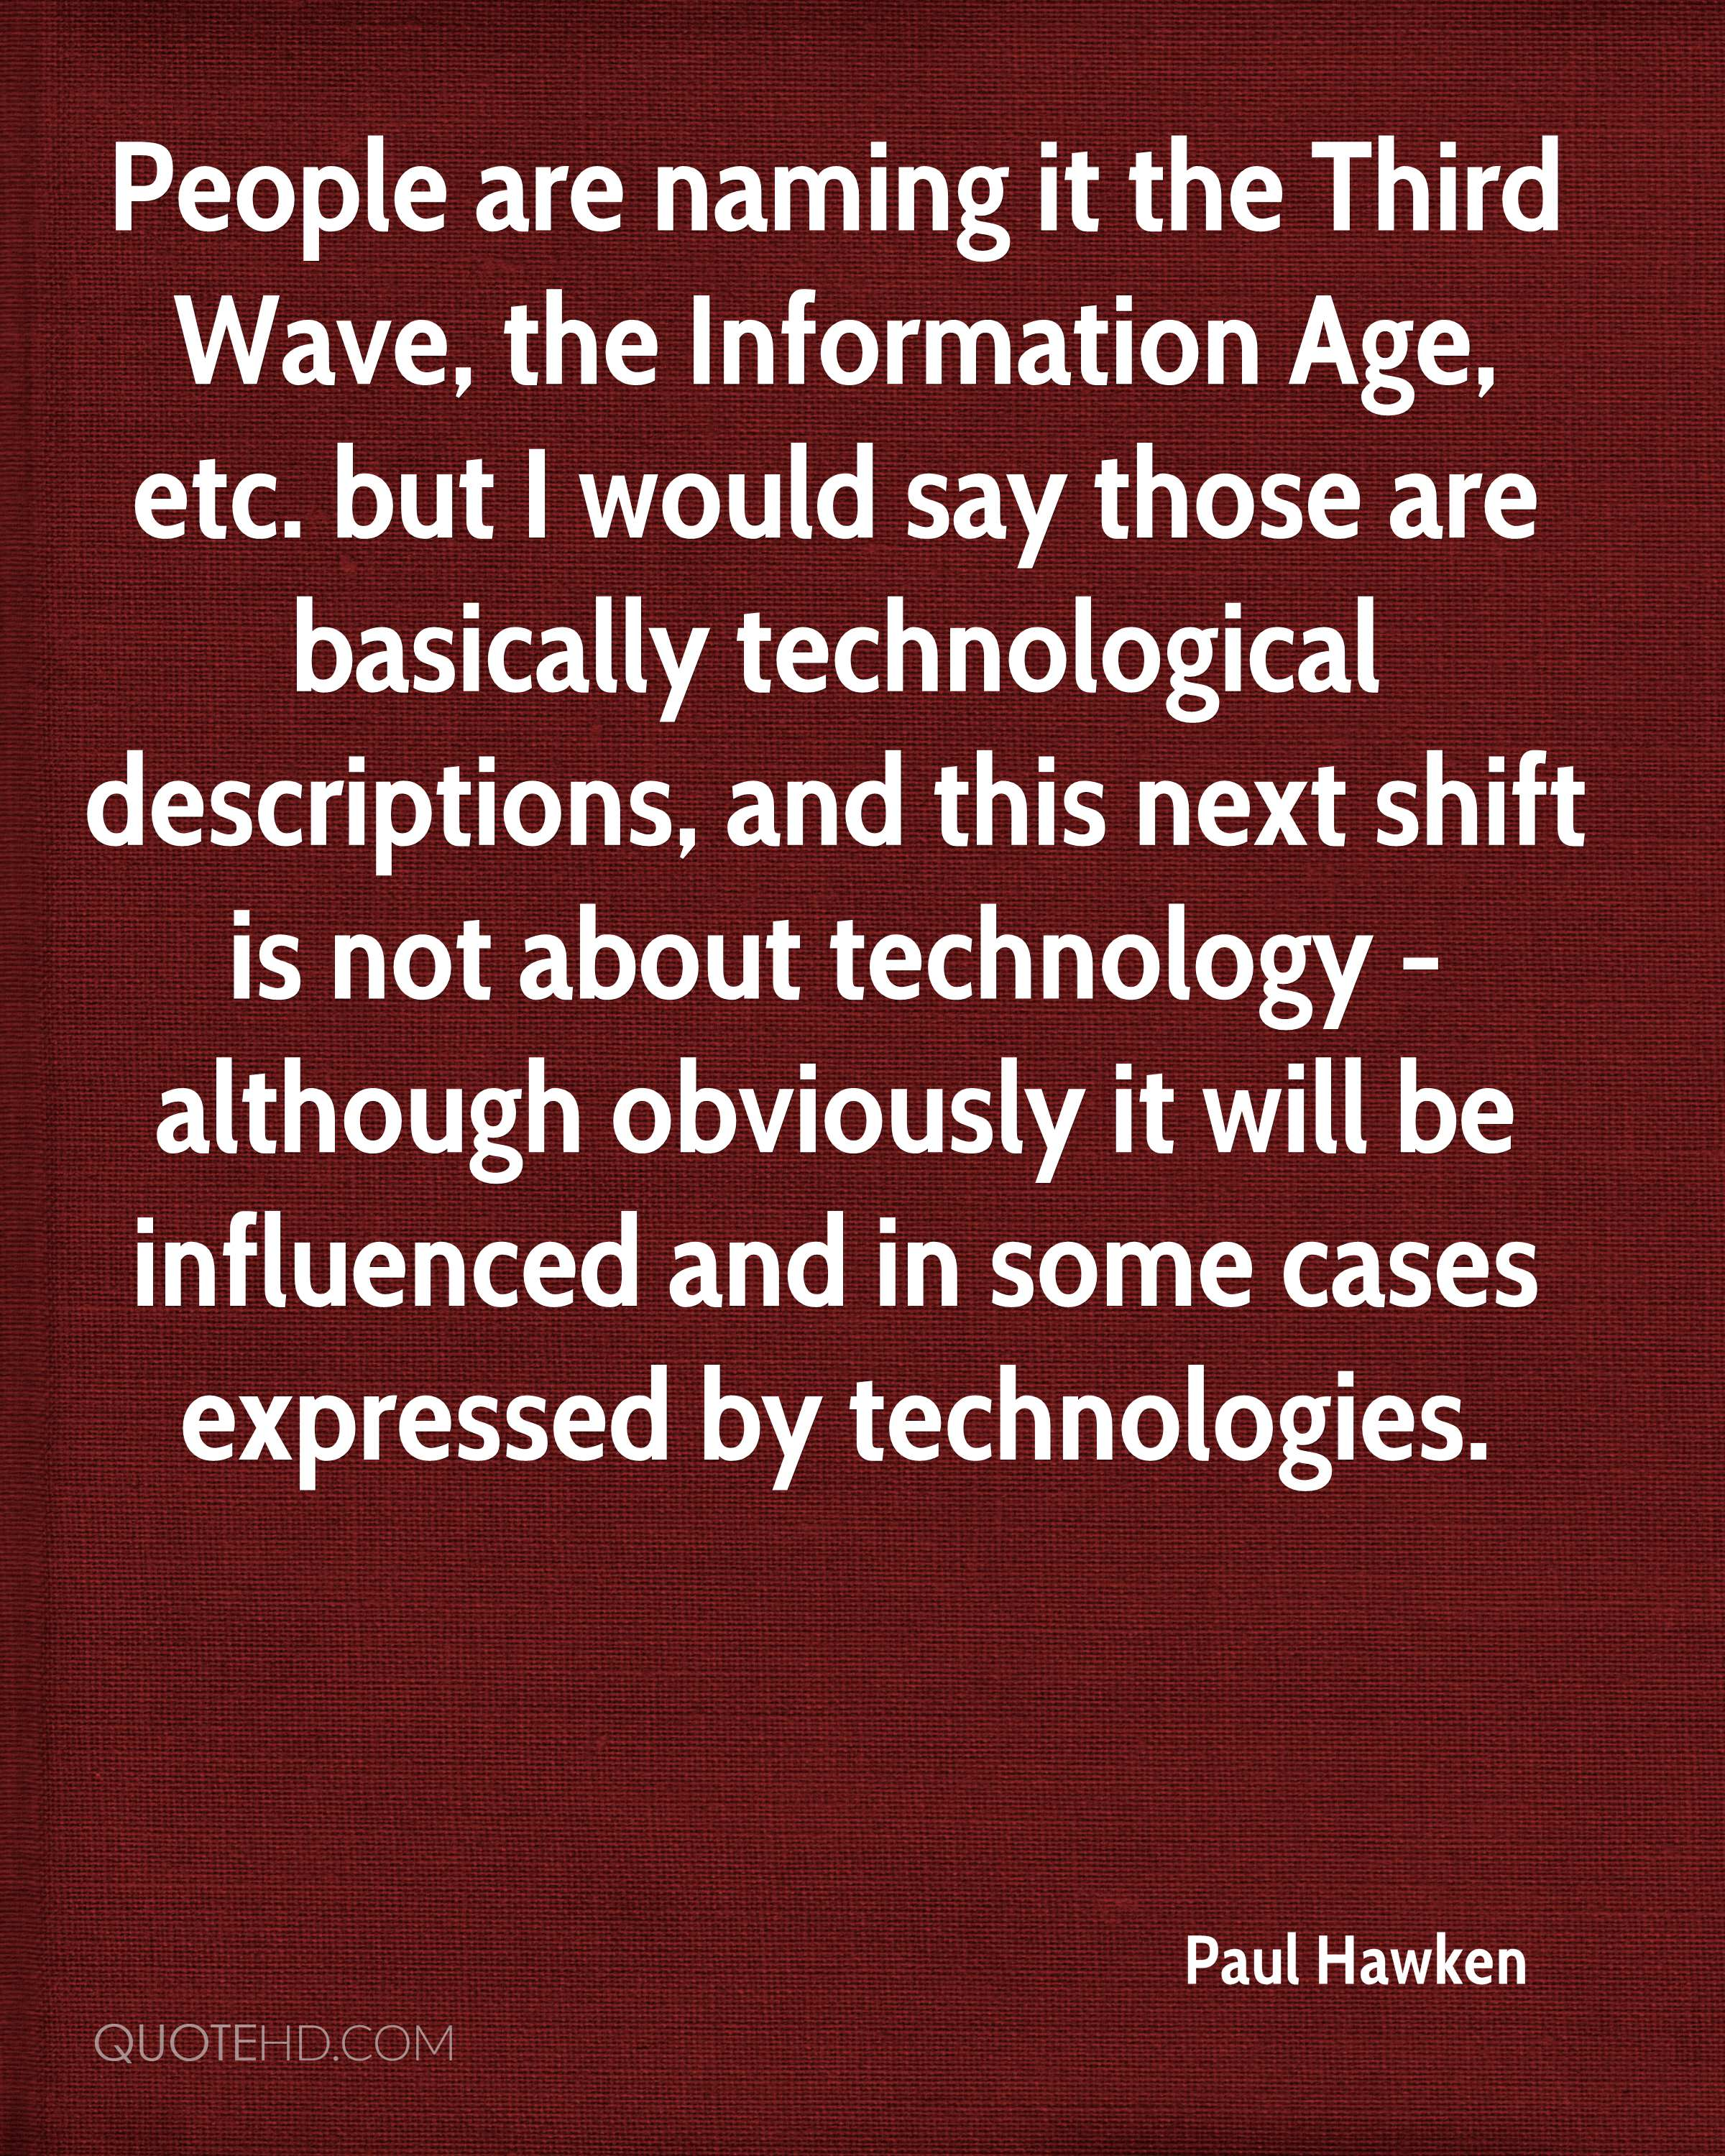 People are naming it the Third Wave, the Information Age, etc. but I would say those are basically technological descriptions, and this next shift is not about technology - although obviously it will be influenced and in some cases expressed by technologies.